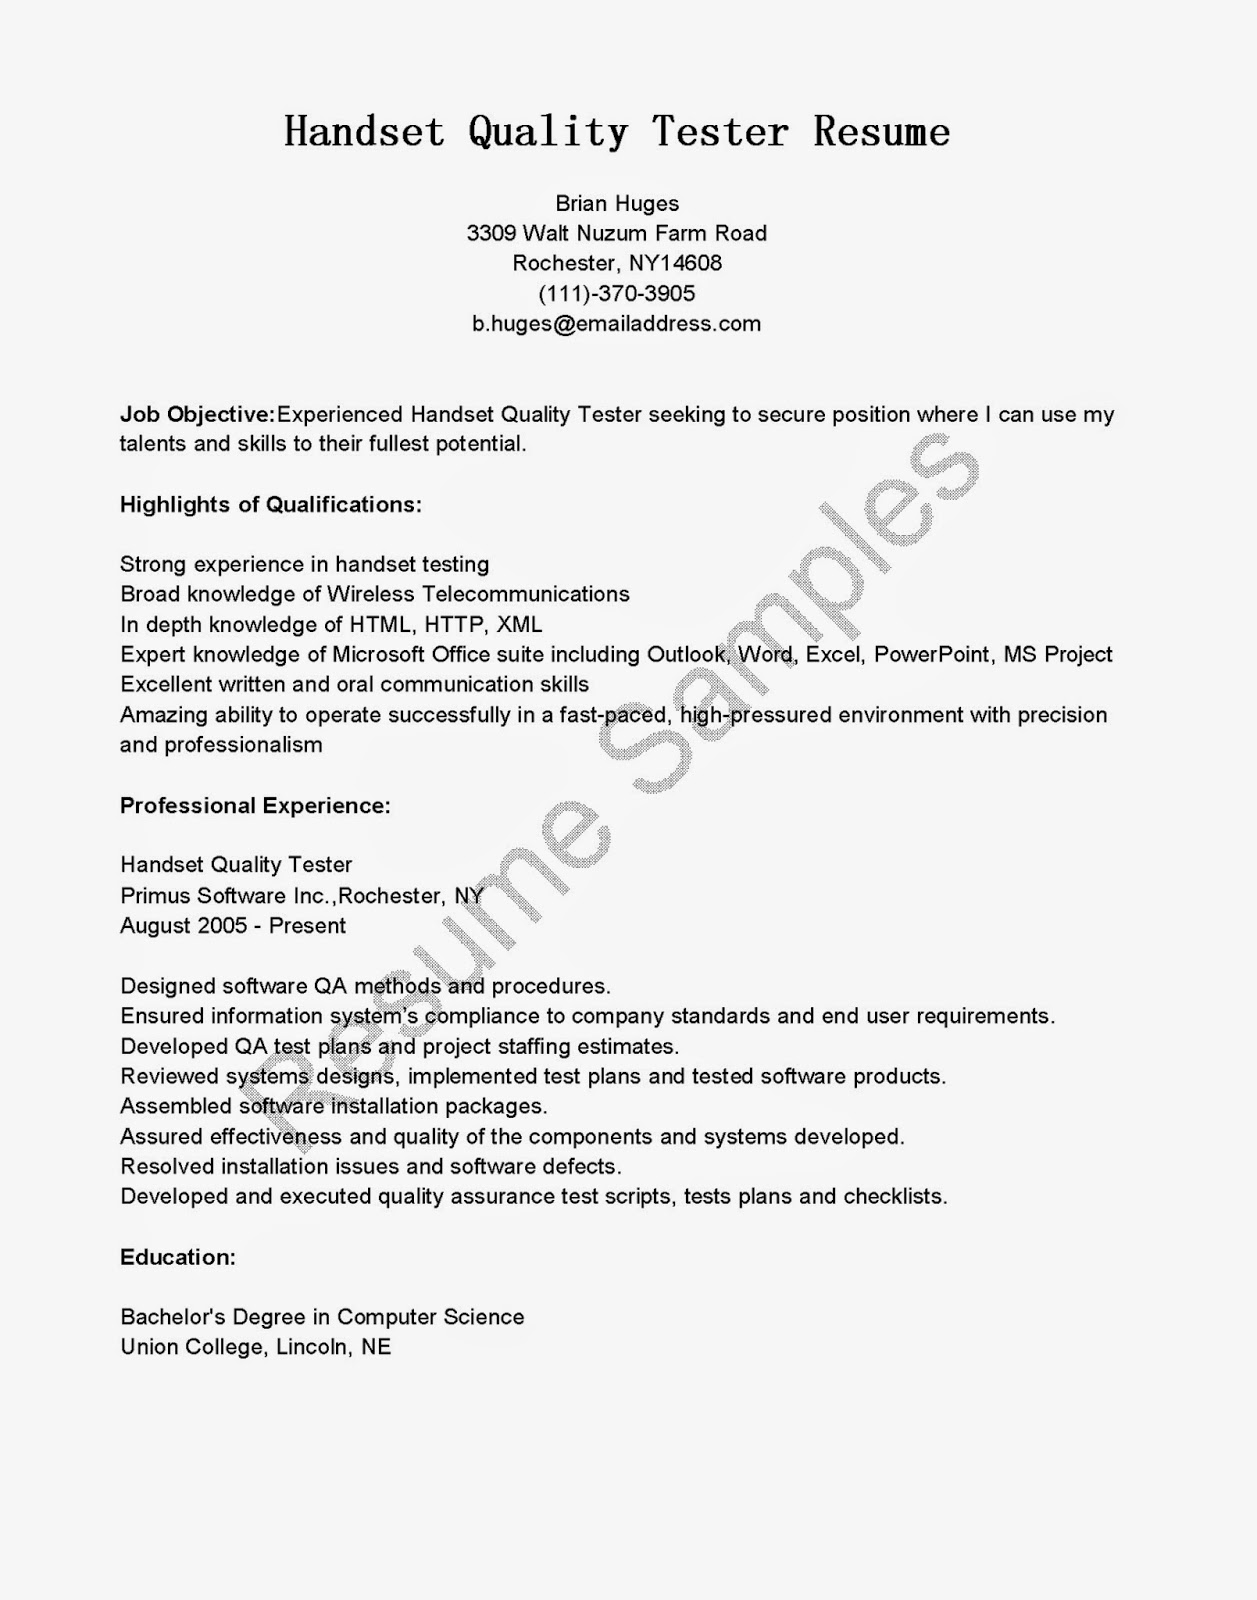 Resume Samples Handset Quality Tester Sample Five